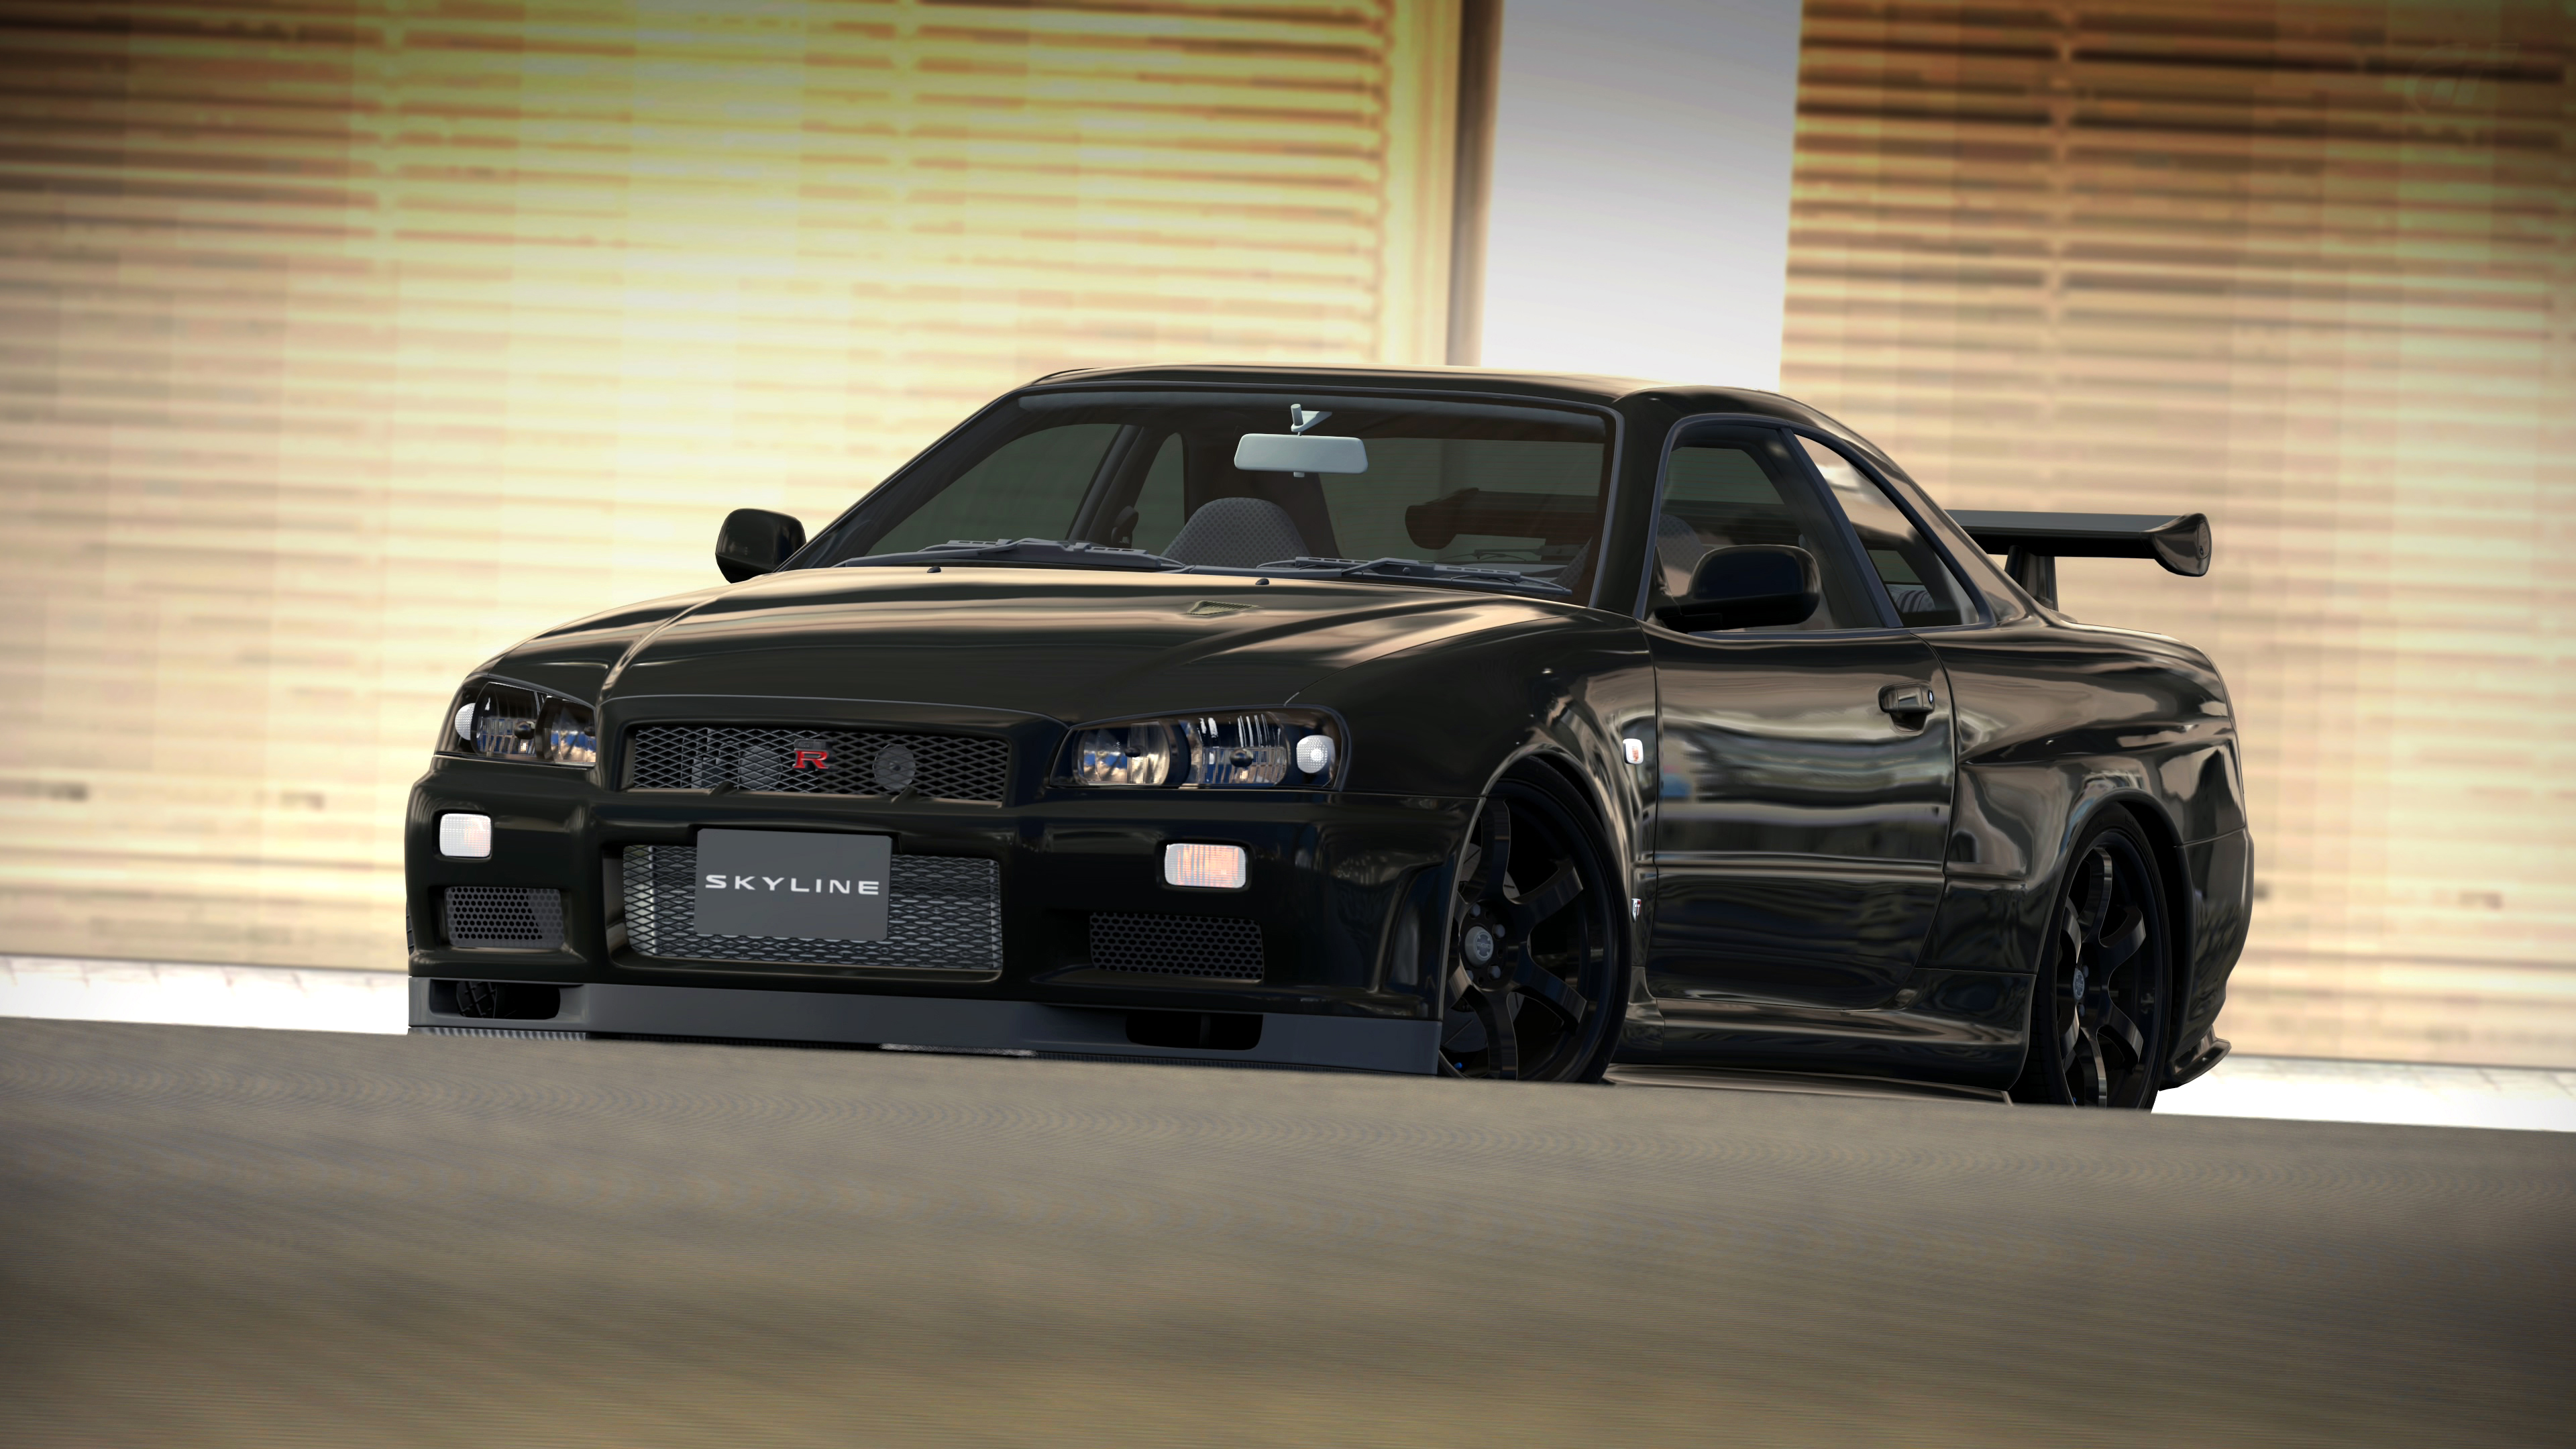 nissan skyline fast and furious 6. gran turismo 6 nissan skyline fast and furious